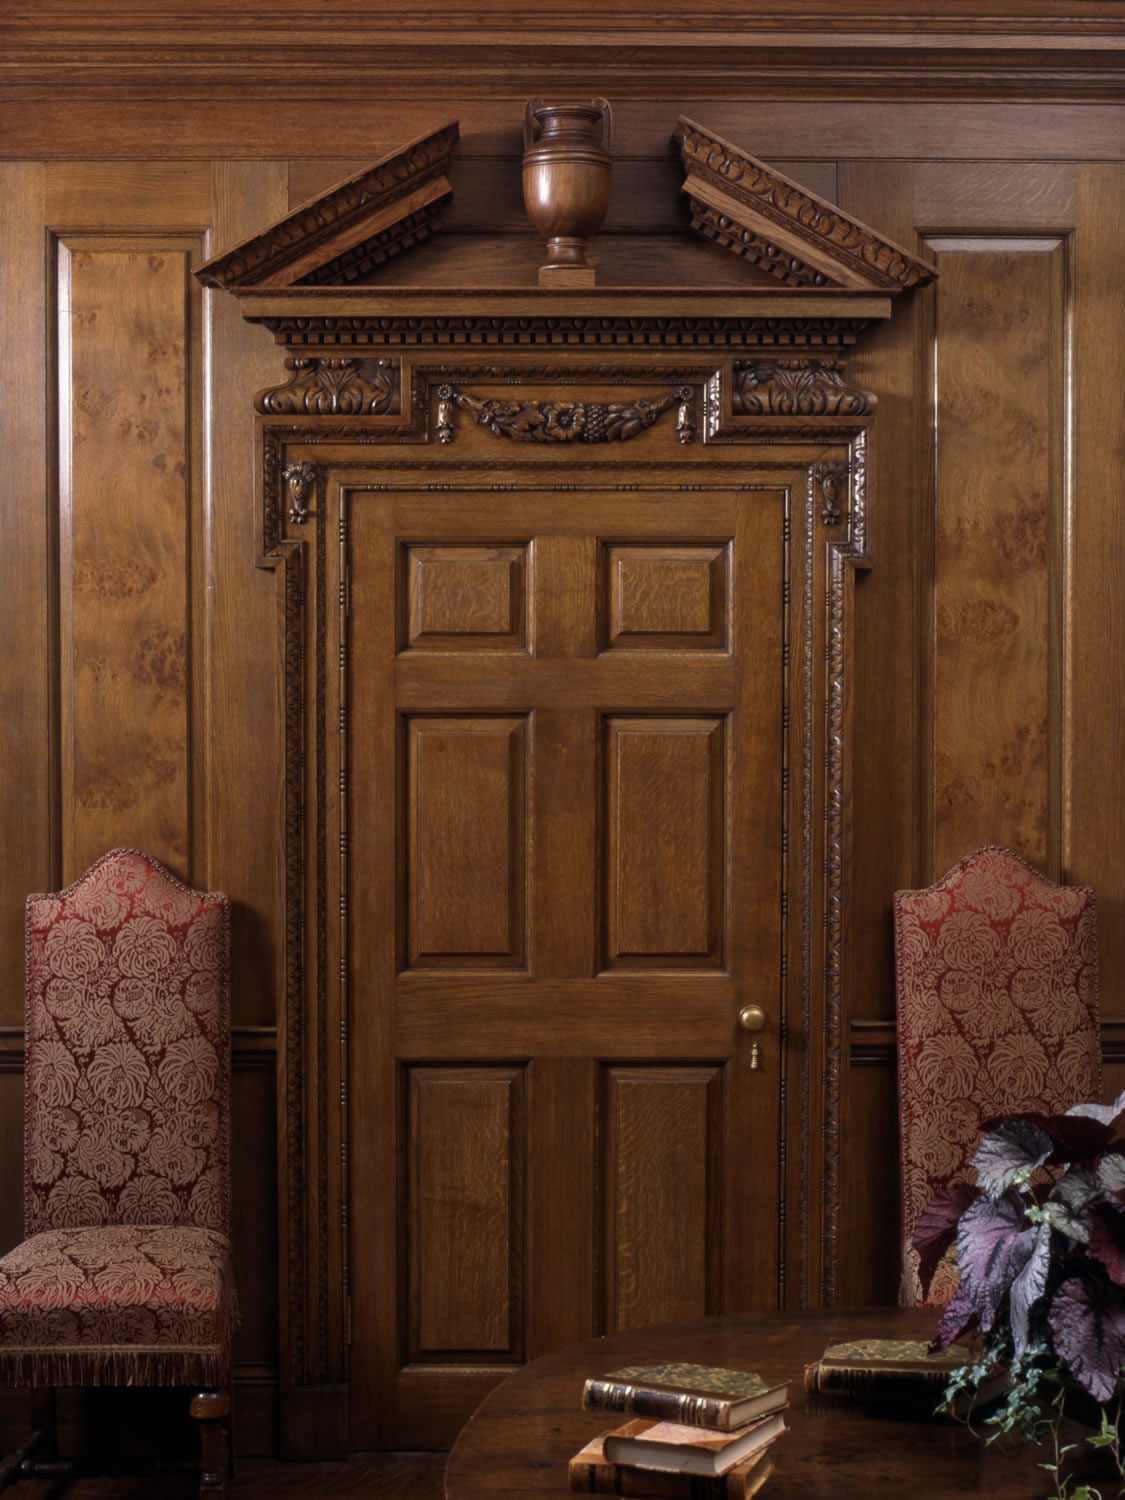 Georgian style oak door, with decorative hand-carved pediment